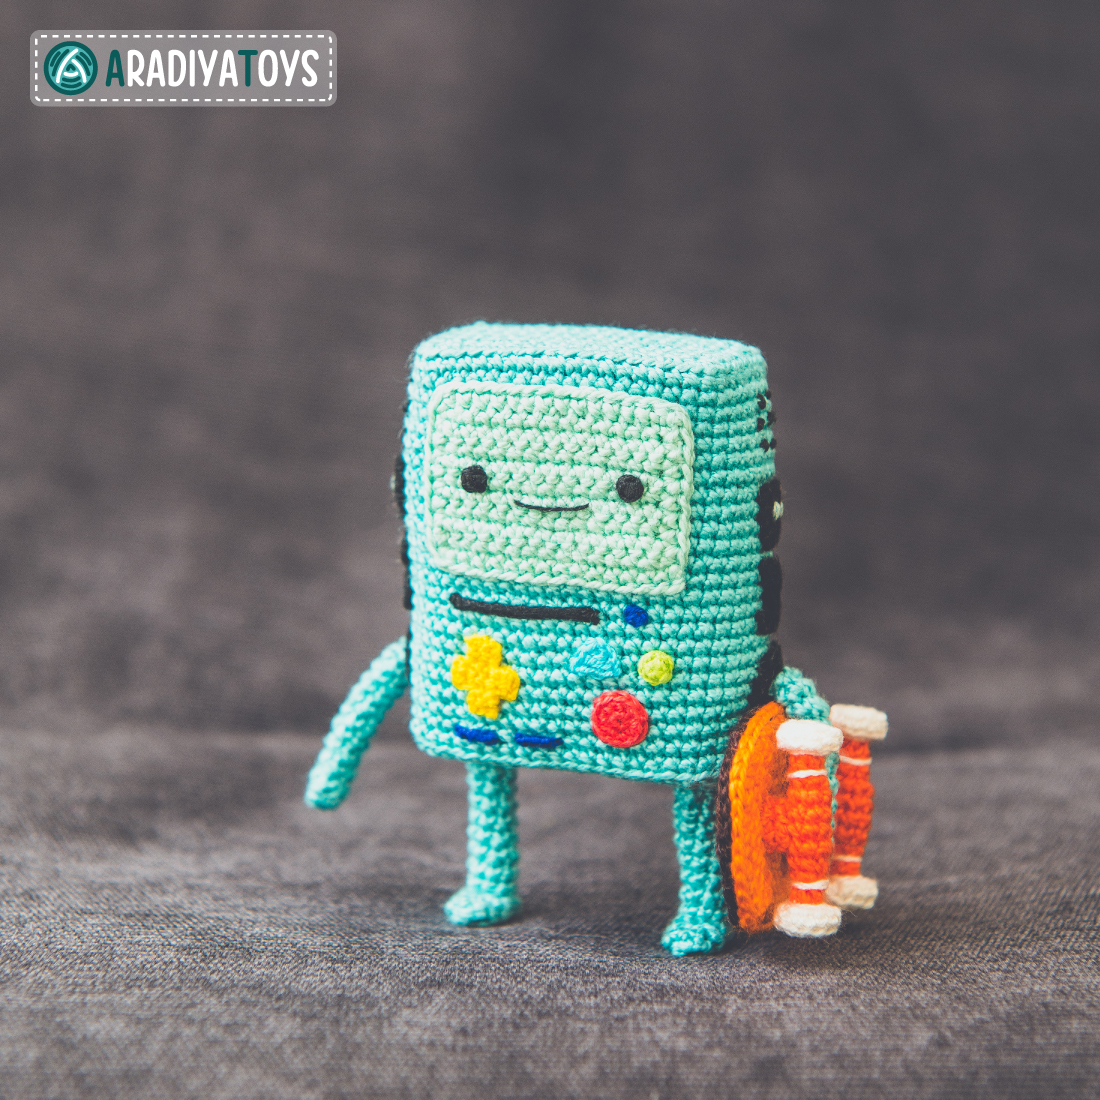 Crochet Pattern of BMO by AradiyaToys